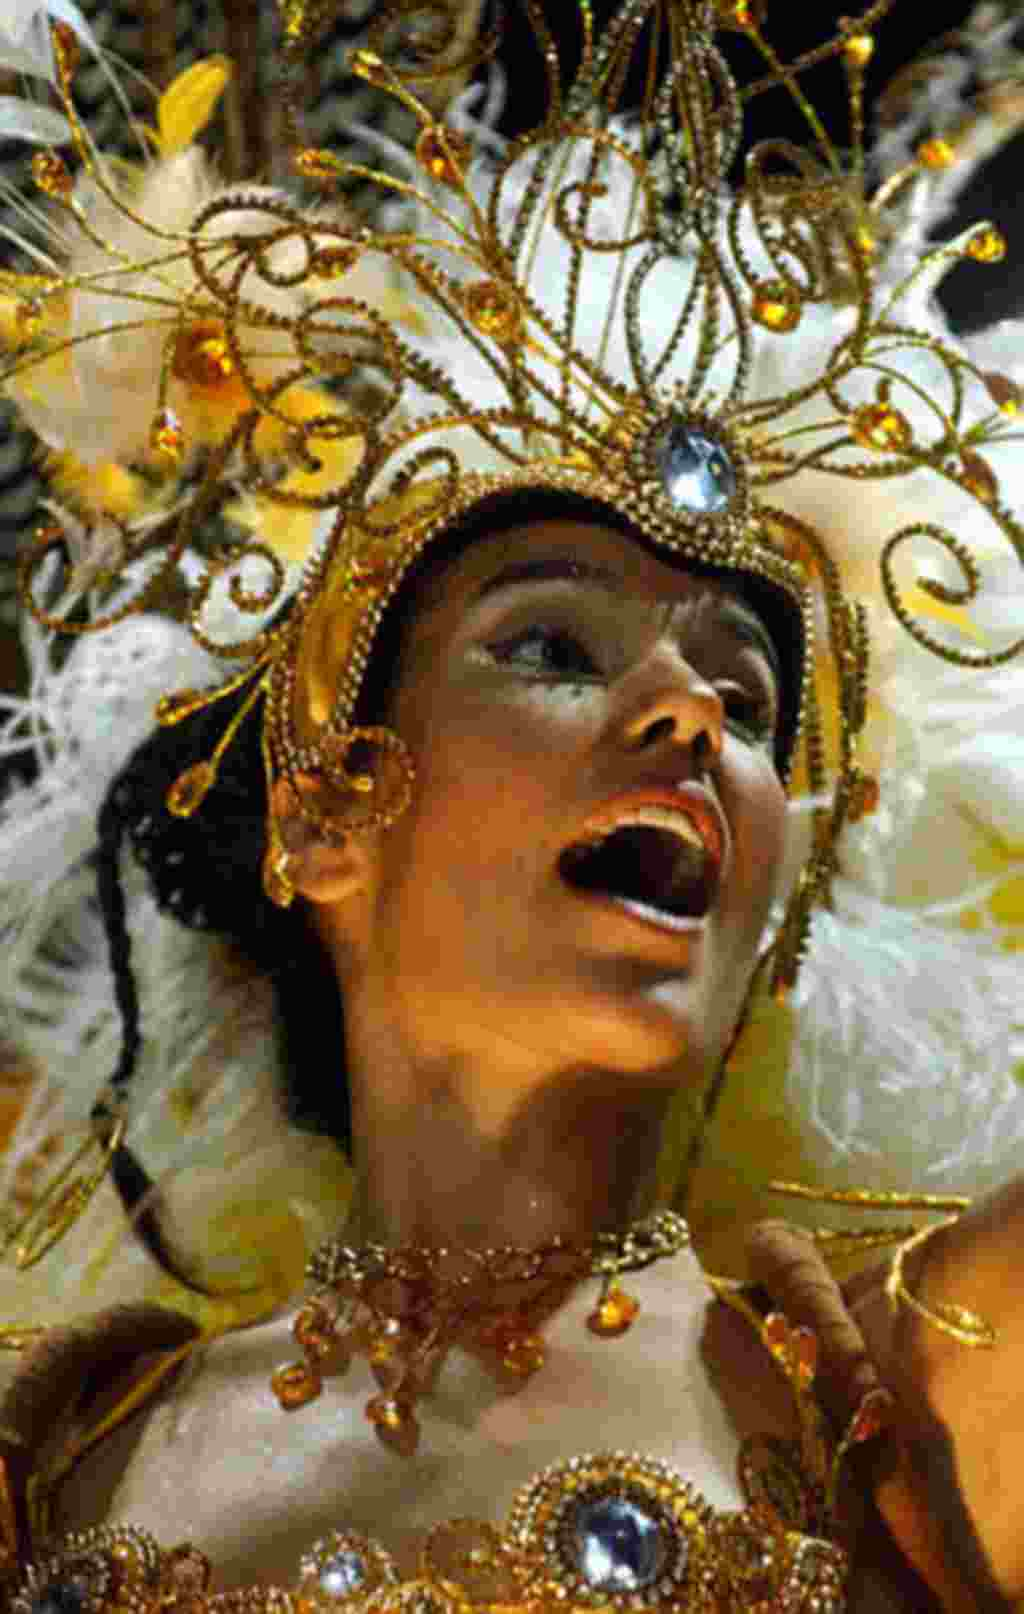 A dancer belonging to Ara Yevi masquerade group parades during the carnival in Gualeguaychu, some 230 km (142 miles) from Buenos Aires, Argentina, Sunday, Feb. 8, 2004. Gualeguaychu, a city in the province of Entre Rios,Argentina, is famous for its carniv